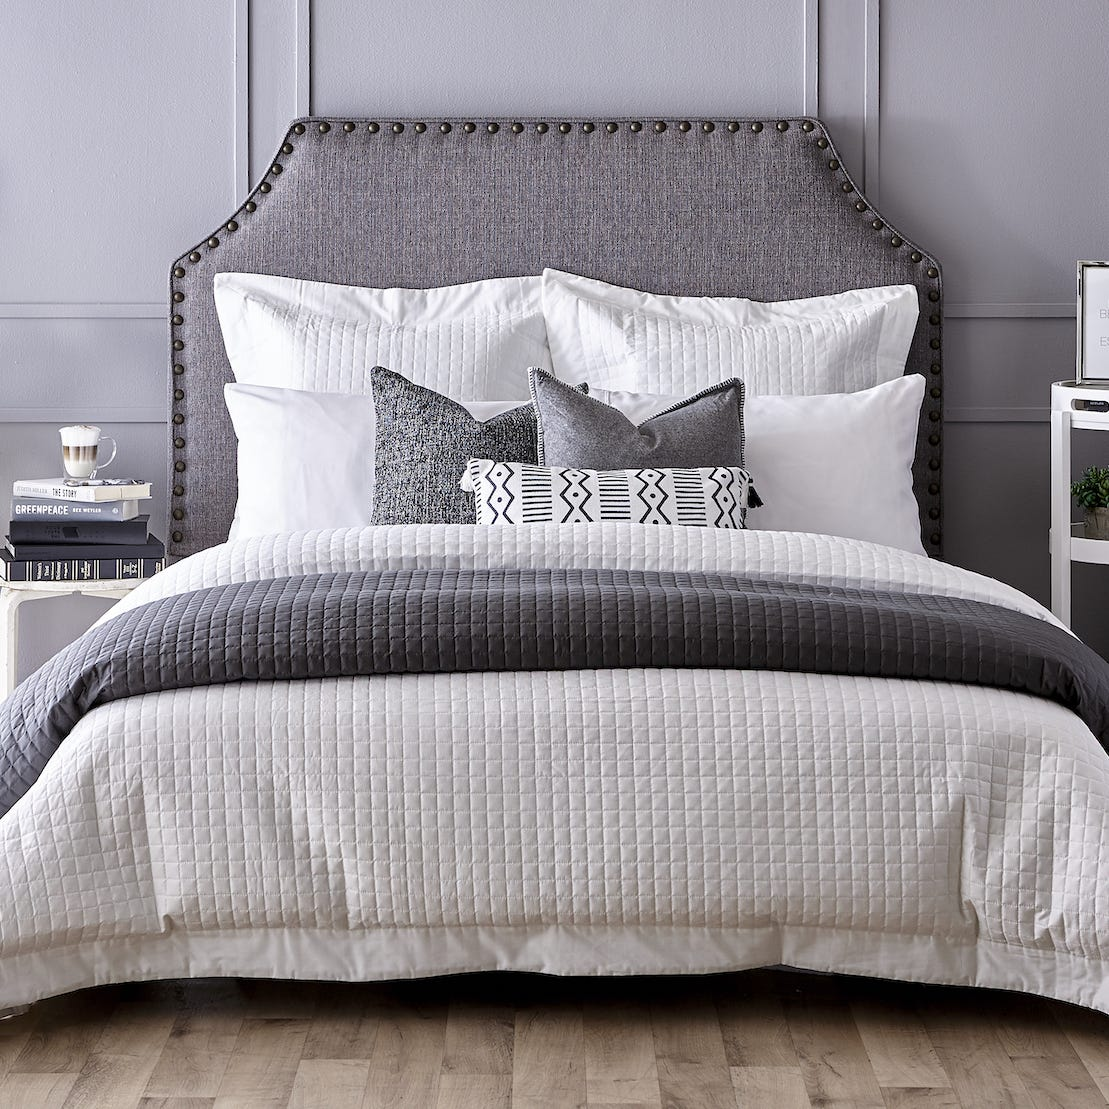 hotel bedding for sale ideas